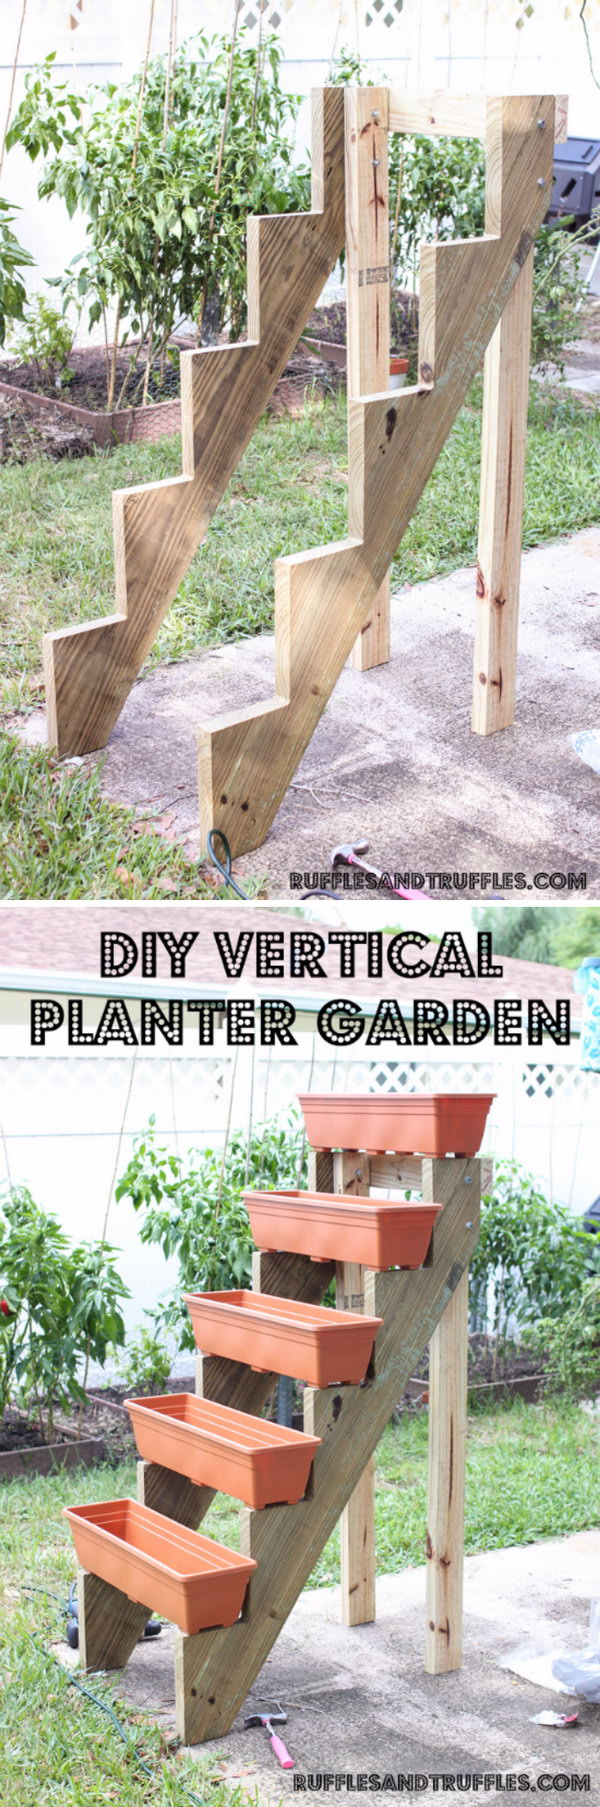 30 Cool Indoor and Outdoor Vertical Garden Ideas 2017 – Diy Vertical Garden Plans